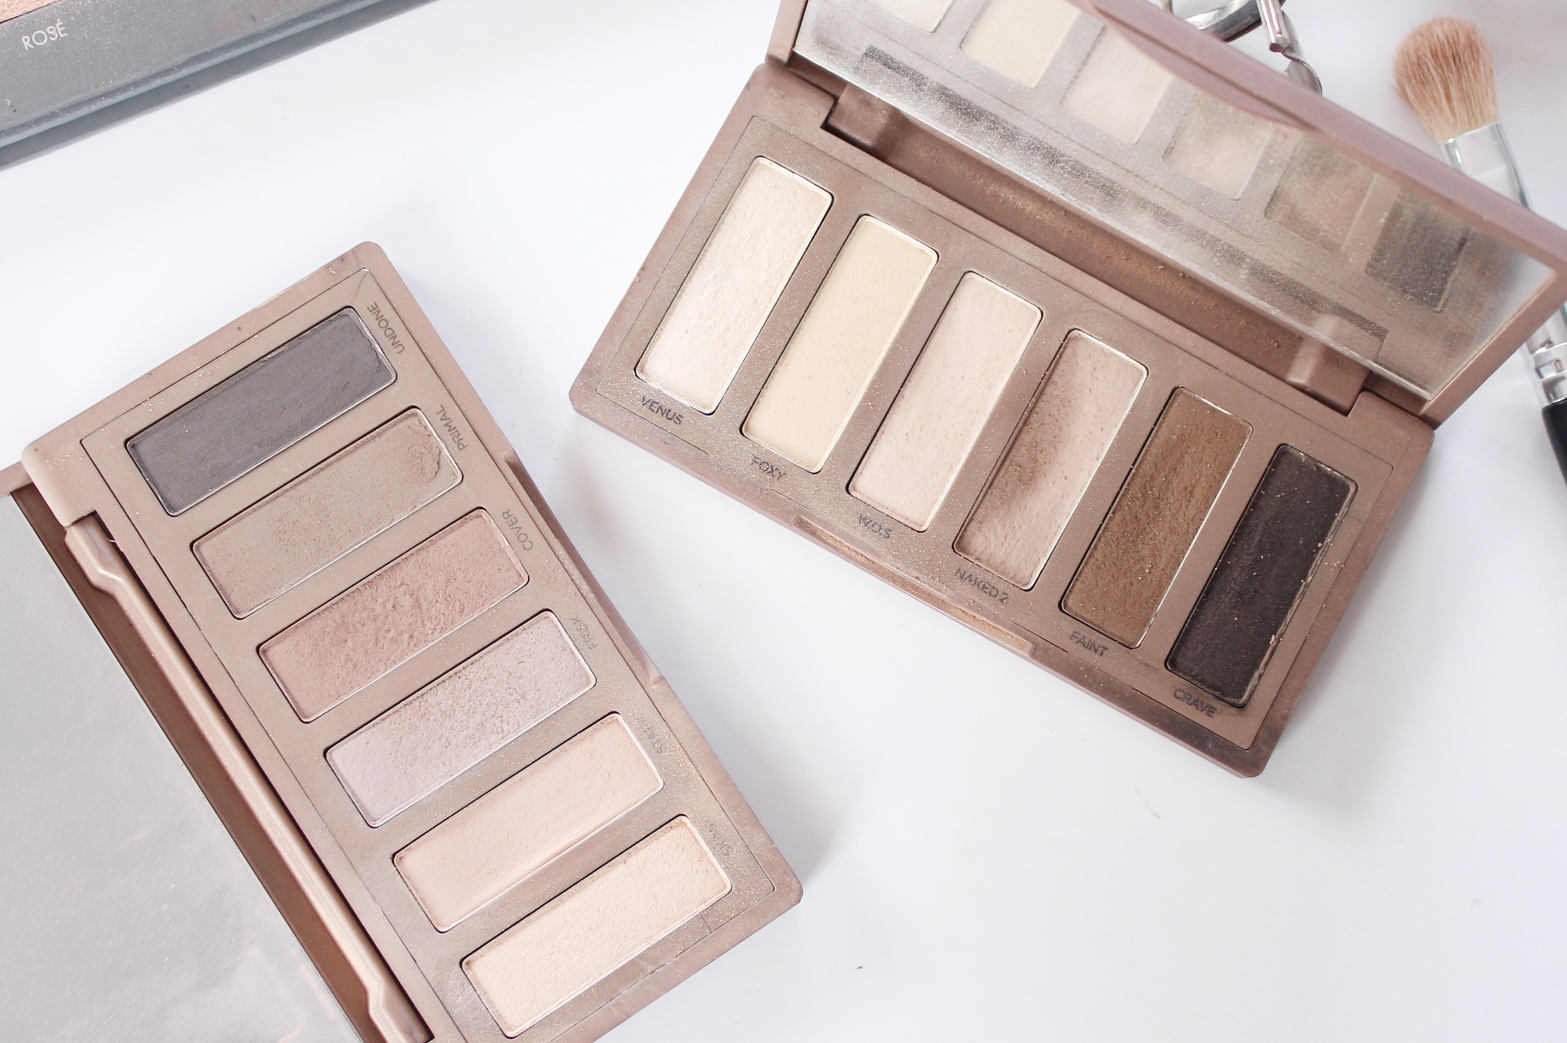 MY MOST USED EYESHADOW PALETTES - Urban Decay Naked 2, Urban Decay Naked Basics 1 + 2, Chi Chi Nudes Palette, LORAC Pro 2 Palette - CassandraMyee